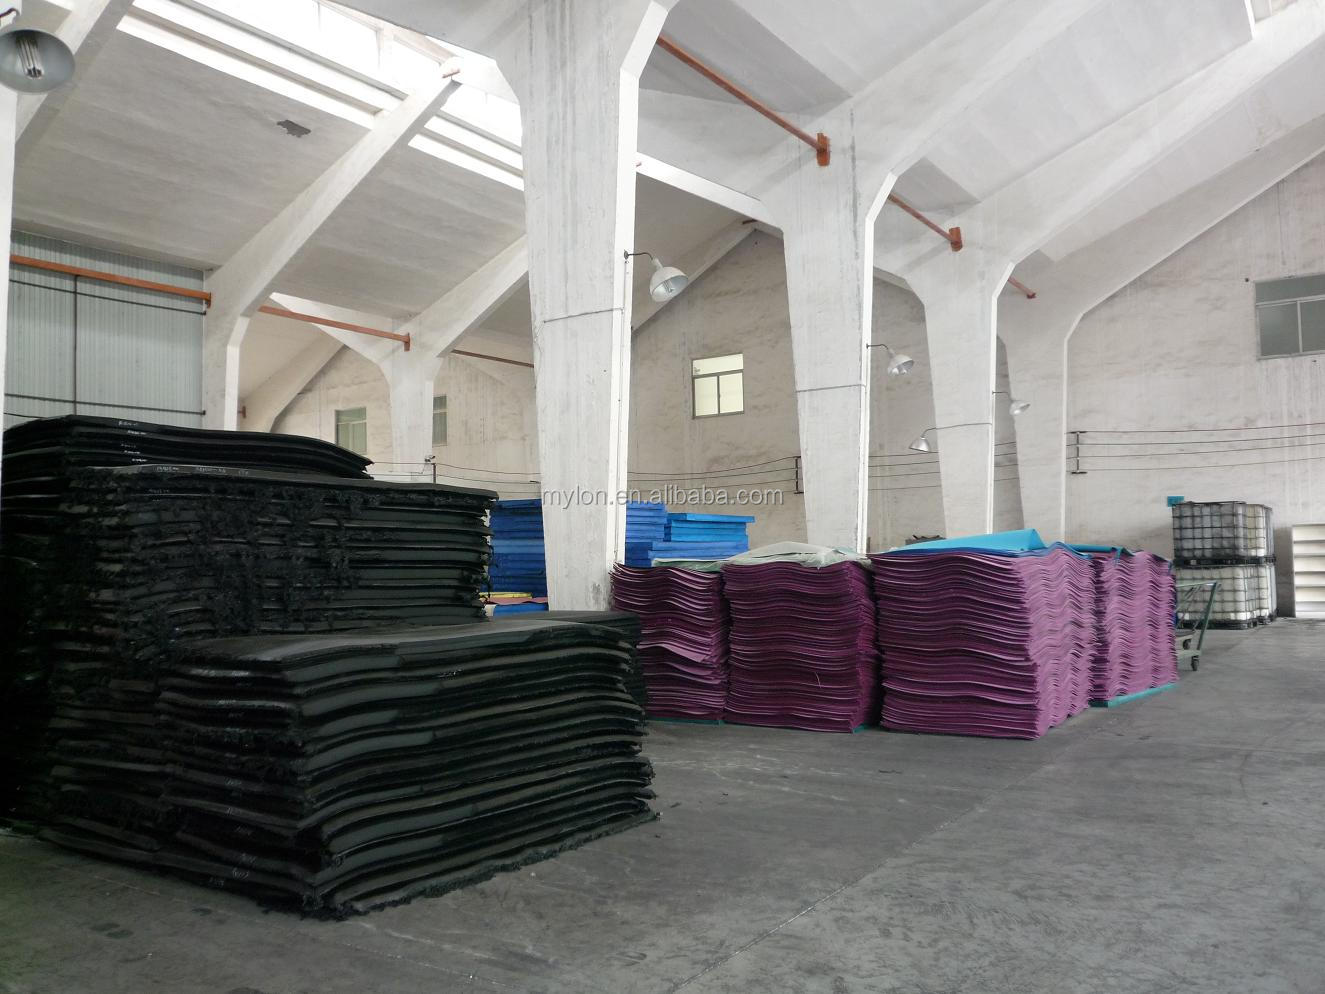 sbr rubber raw material/sbr rubber sheet foam/industrial sbr rubber sheet